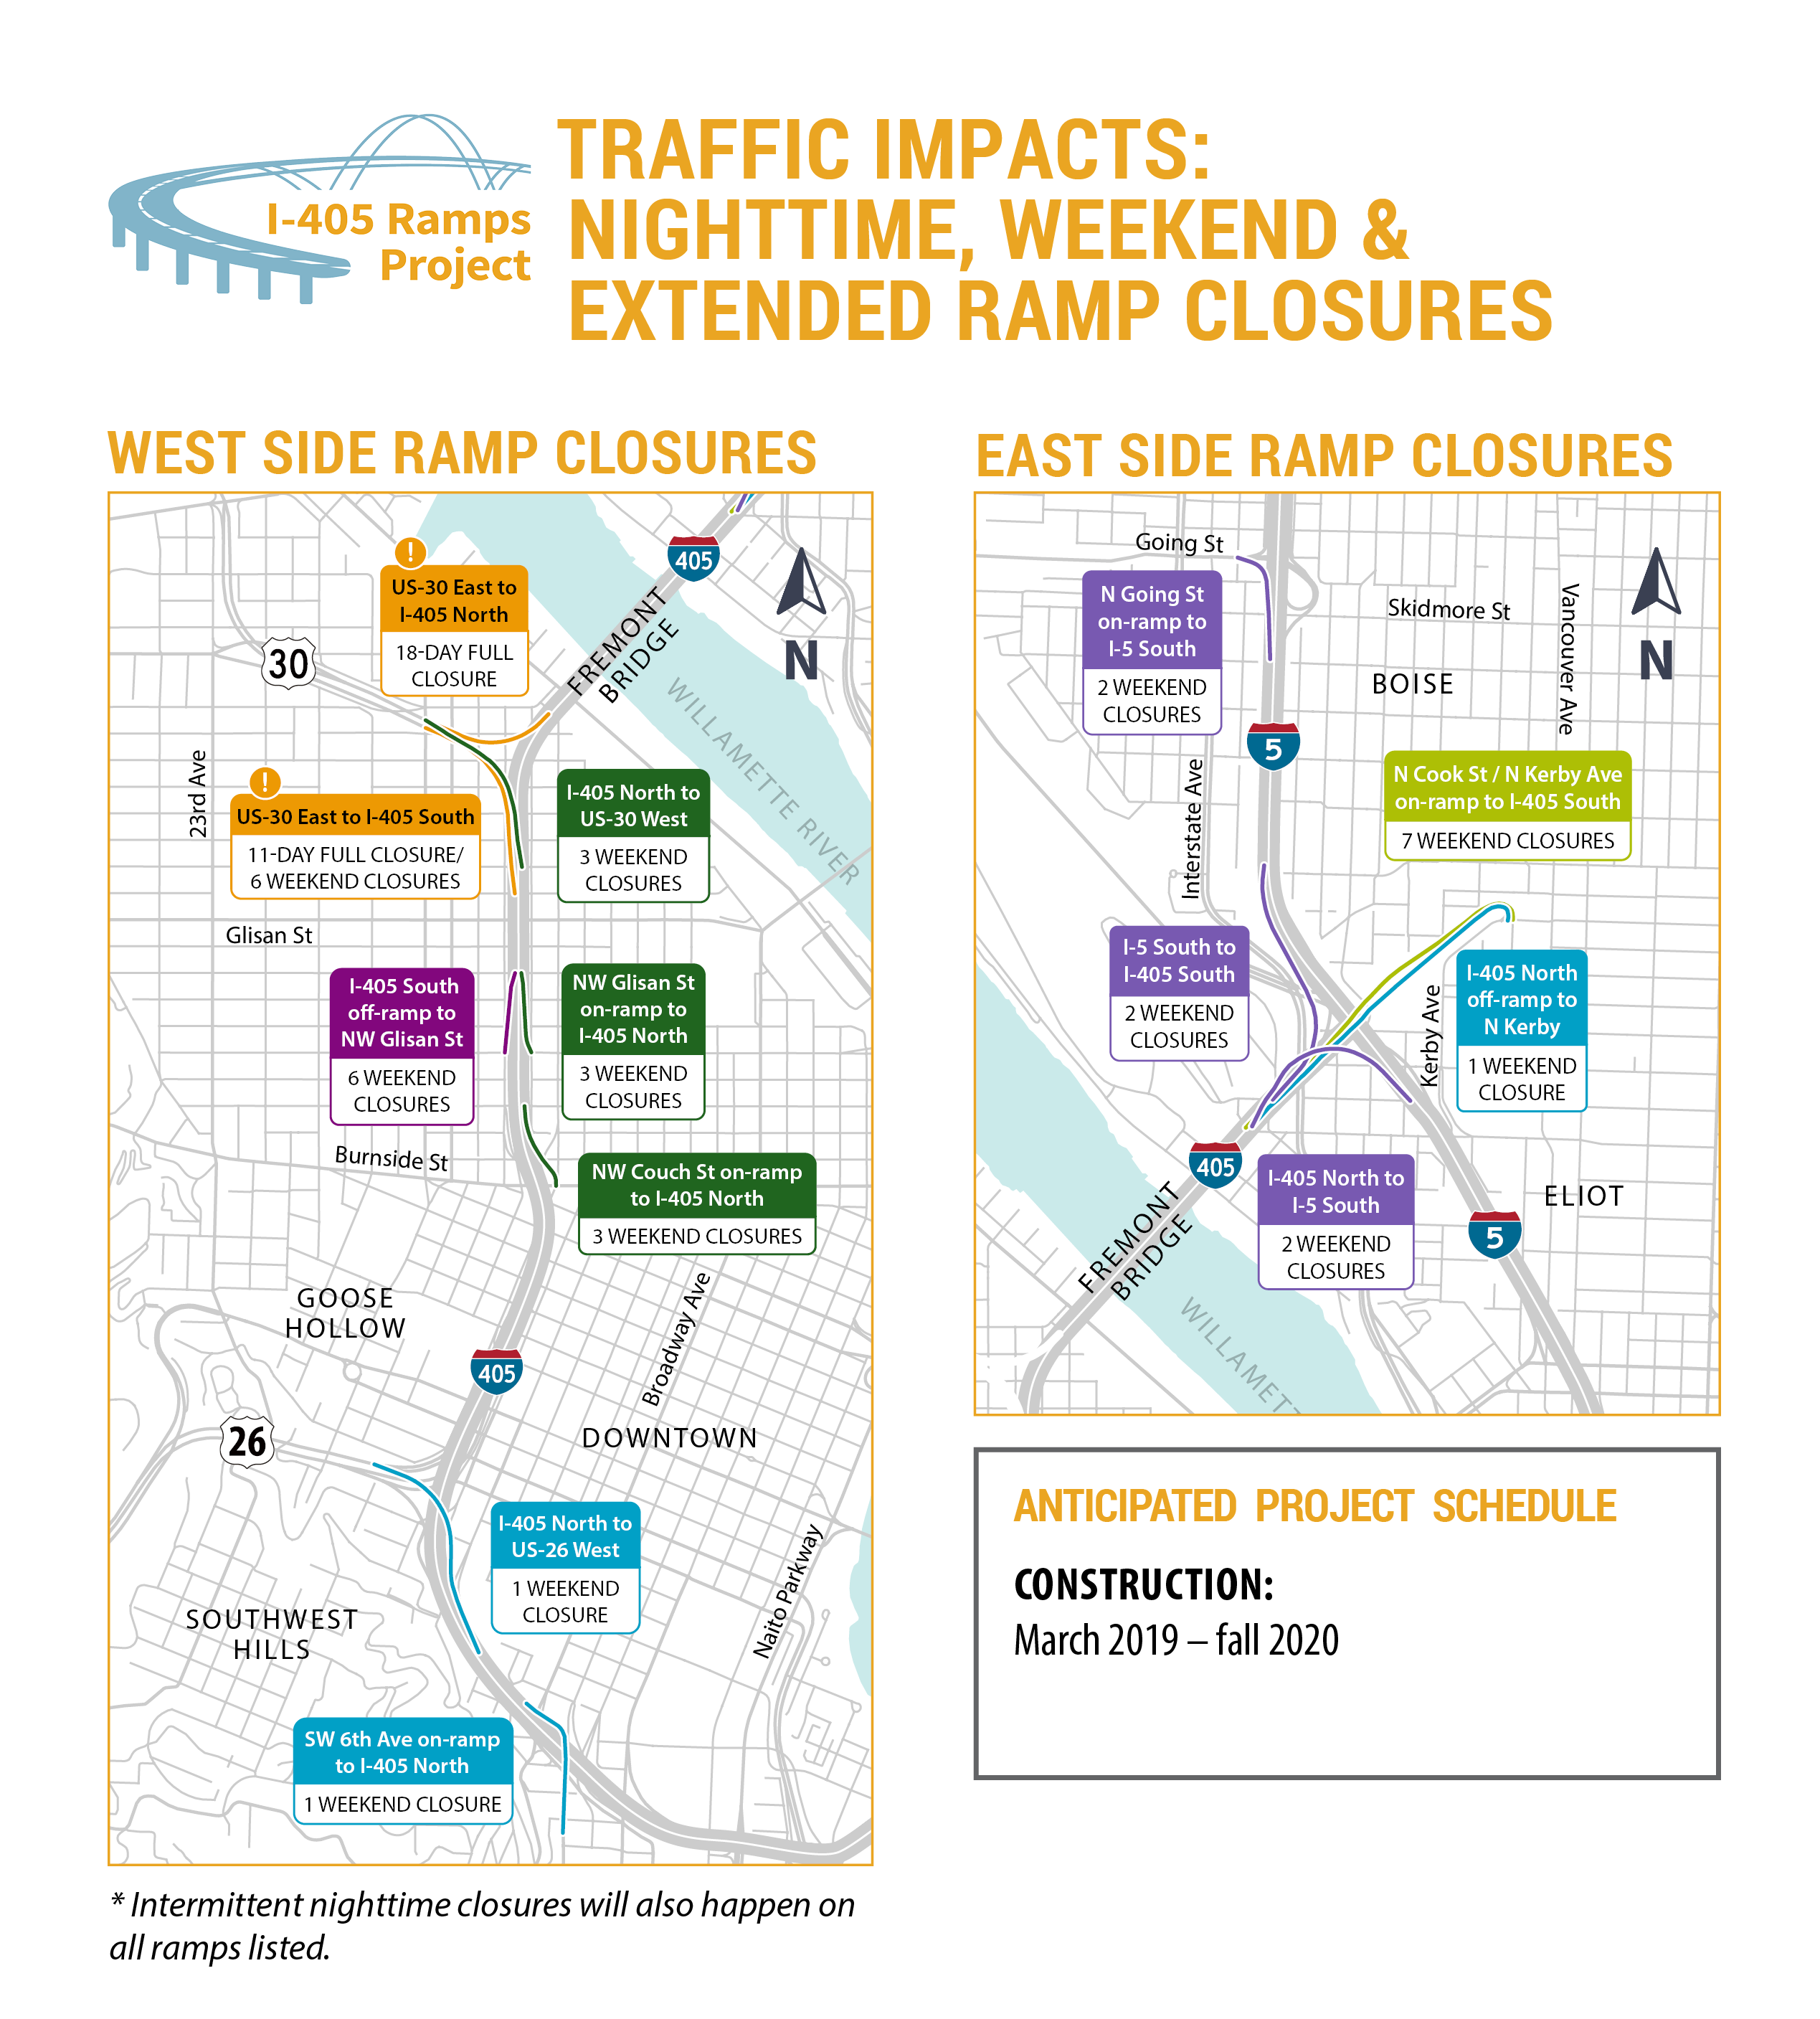 Ramps on the east and west ends of I-405 will have construction.